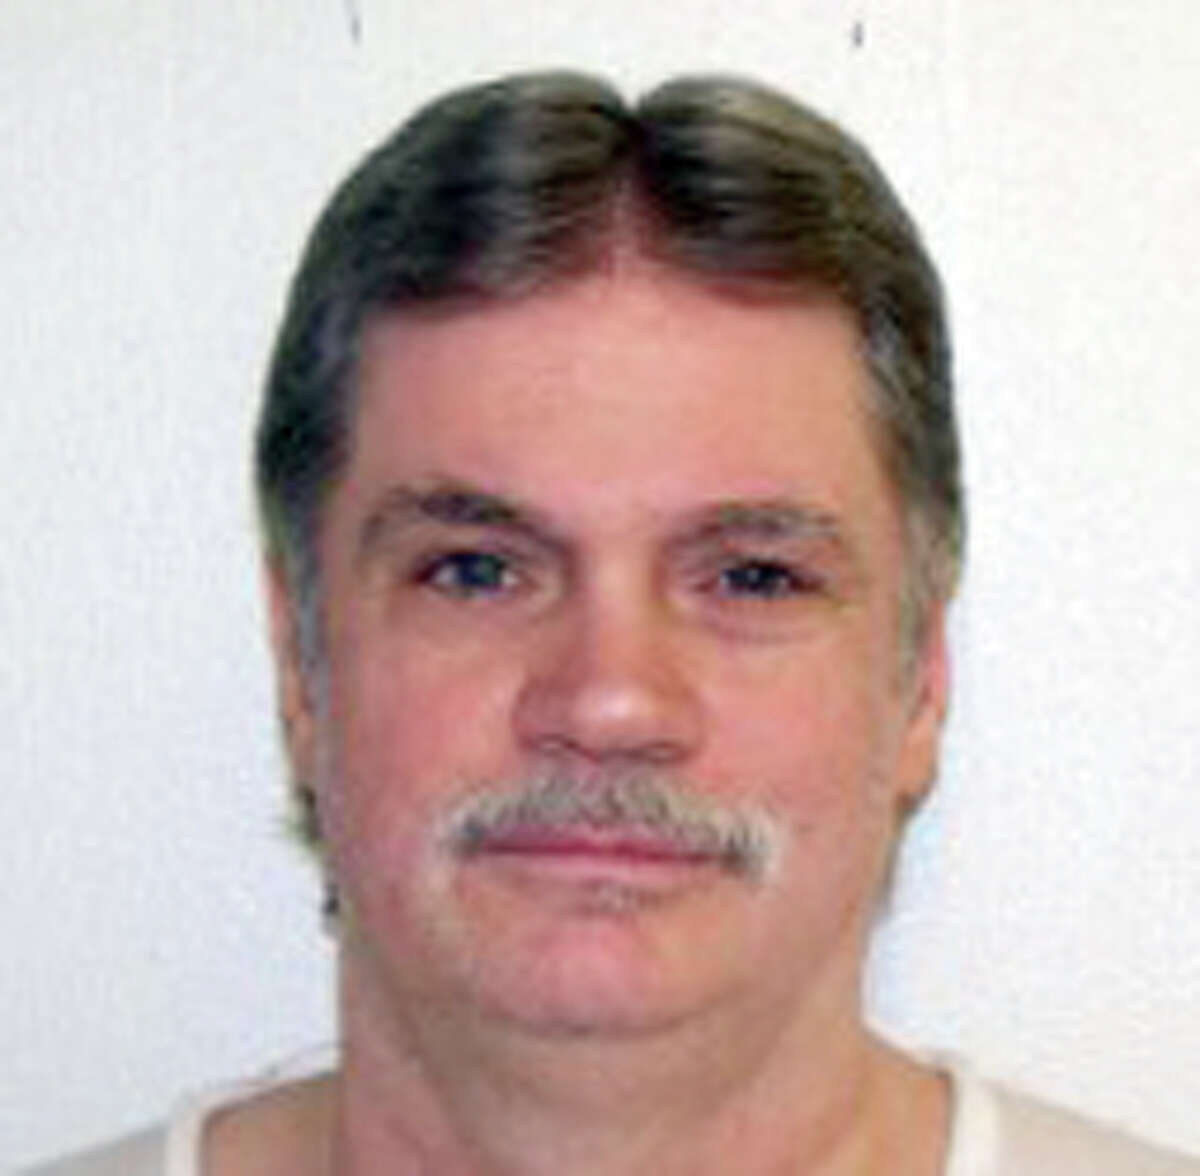 This undated handout photo provided by the Arkansas Department of Correction shows Bruce Earl Ward. Arkansas will resume lethal injections after a 10-year gap in October 2015 with a double execution. Ward and Don William Davis are scheduled to die Oct. 21. Ward, a former perfume salesman was convicted in the 1989 killing of 18-year-old Rebecca Doss. (Arkansas Department of Correction, via AP)